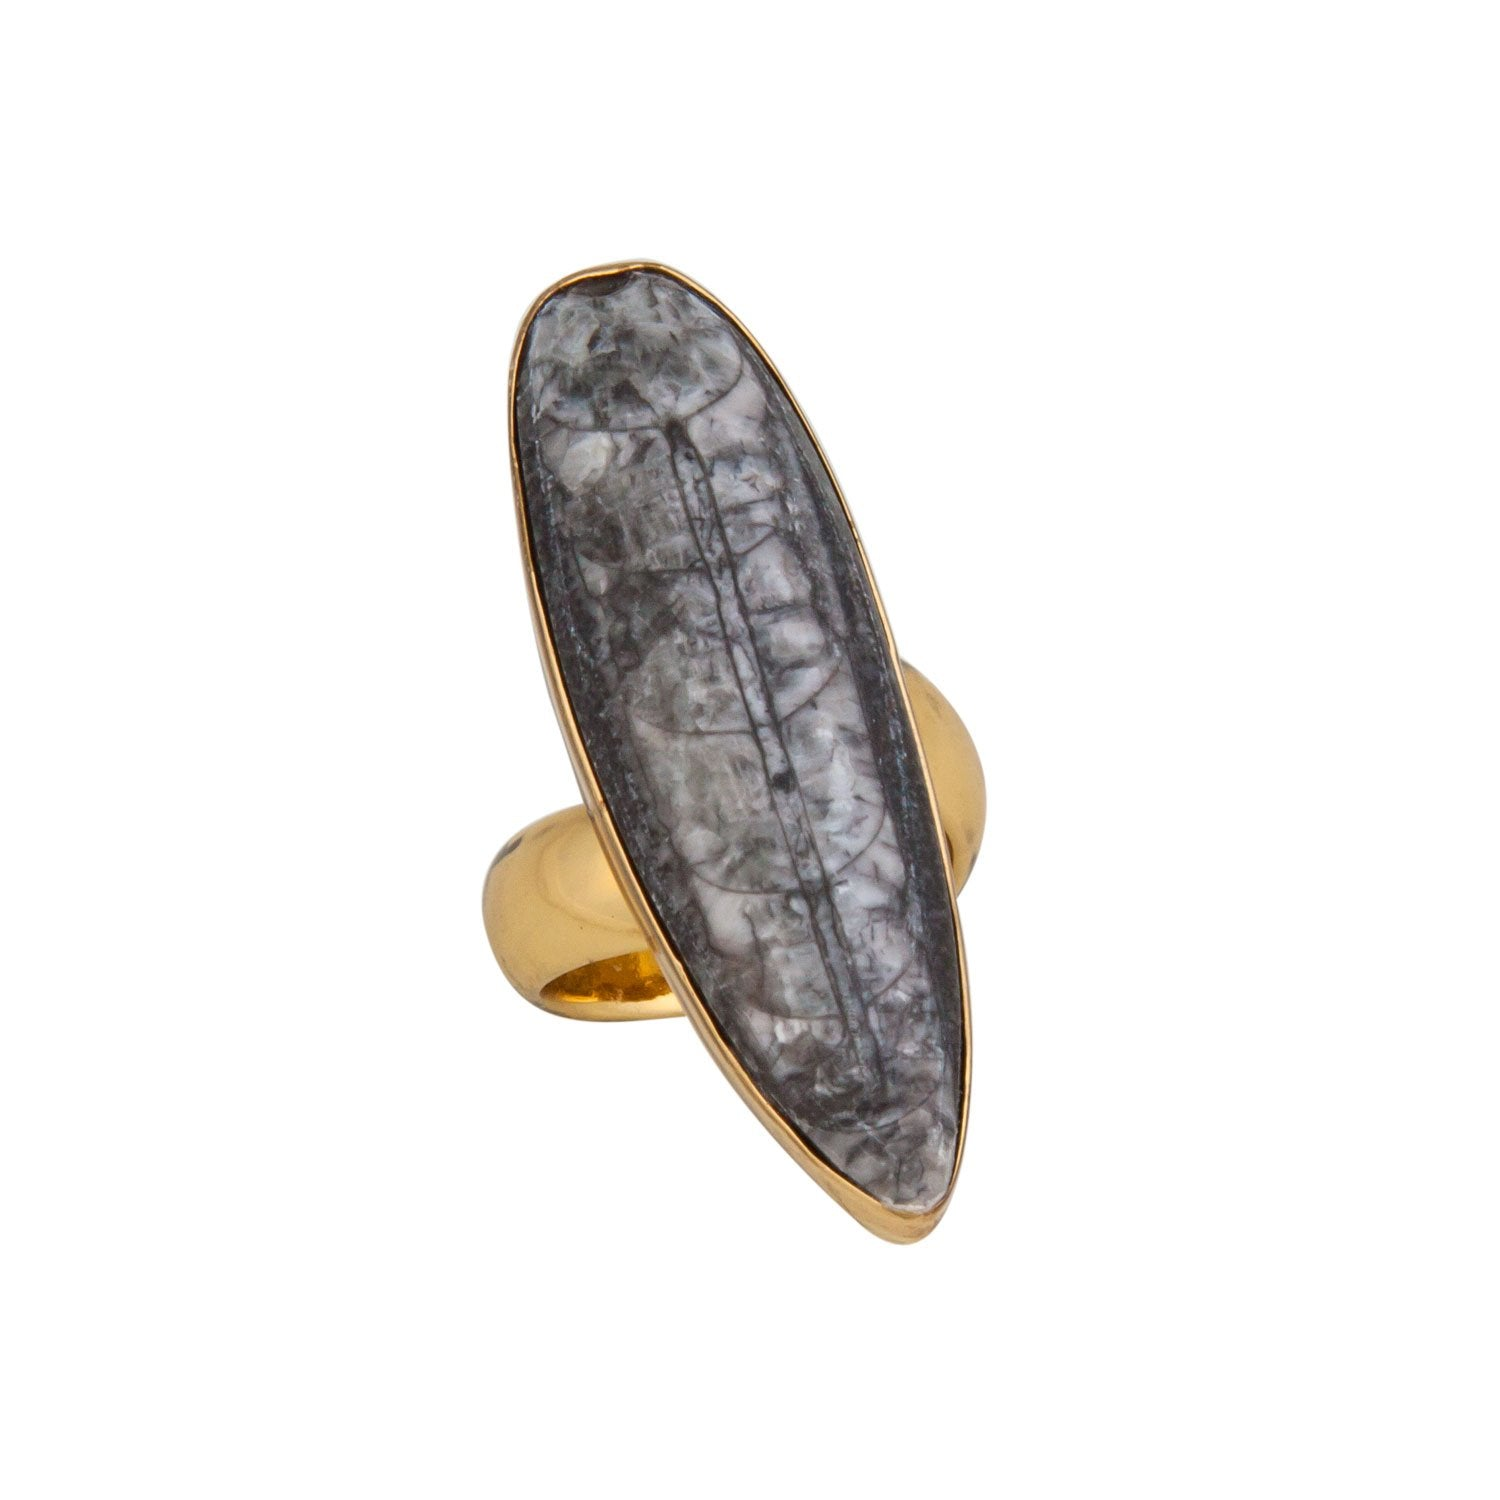 Alchemia Orthoceras Adjustable Ring | Charles Albert Jewelry